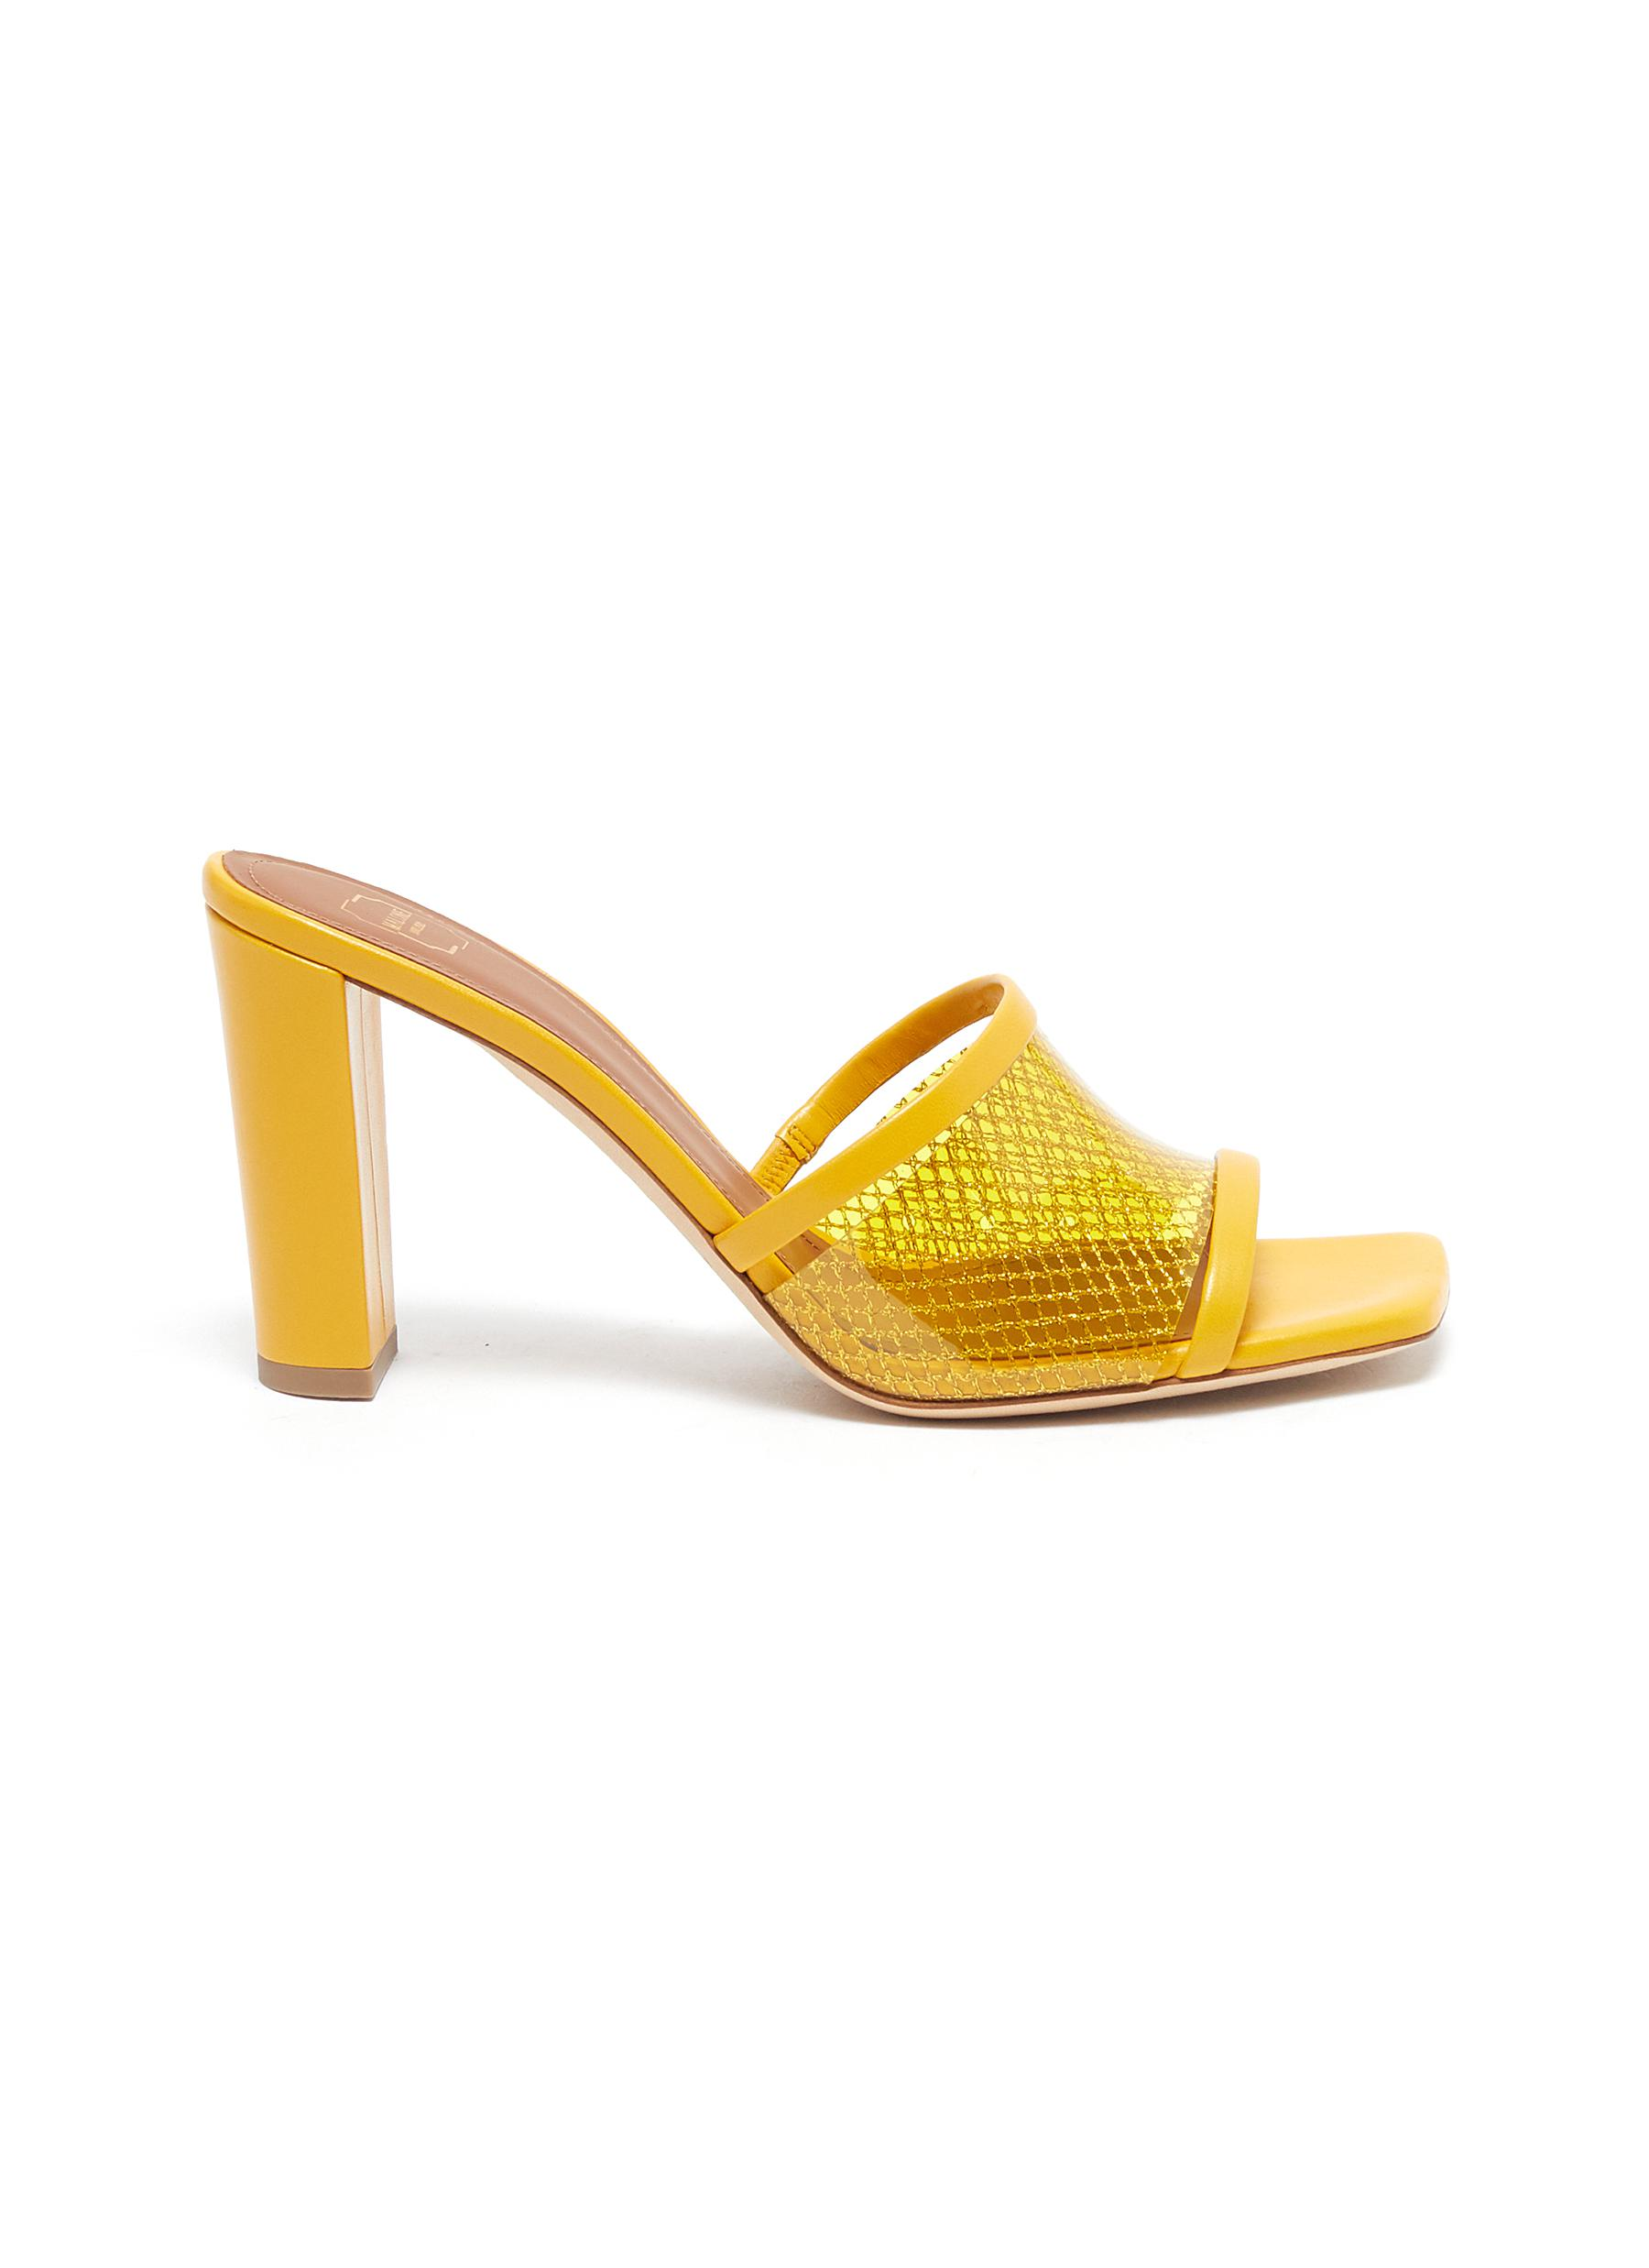 Malone Souliers High Heels Demi 85mm mesh leather sandals